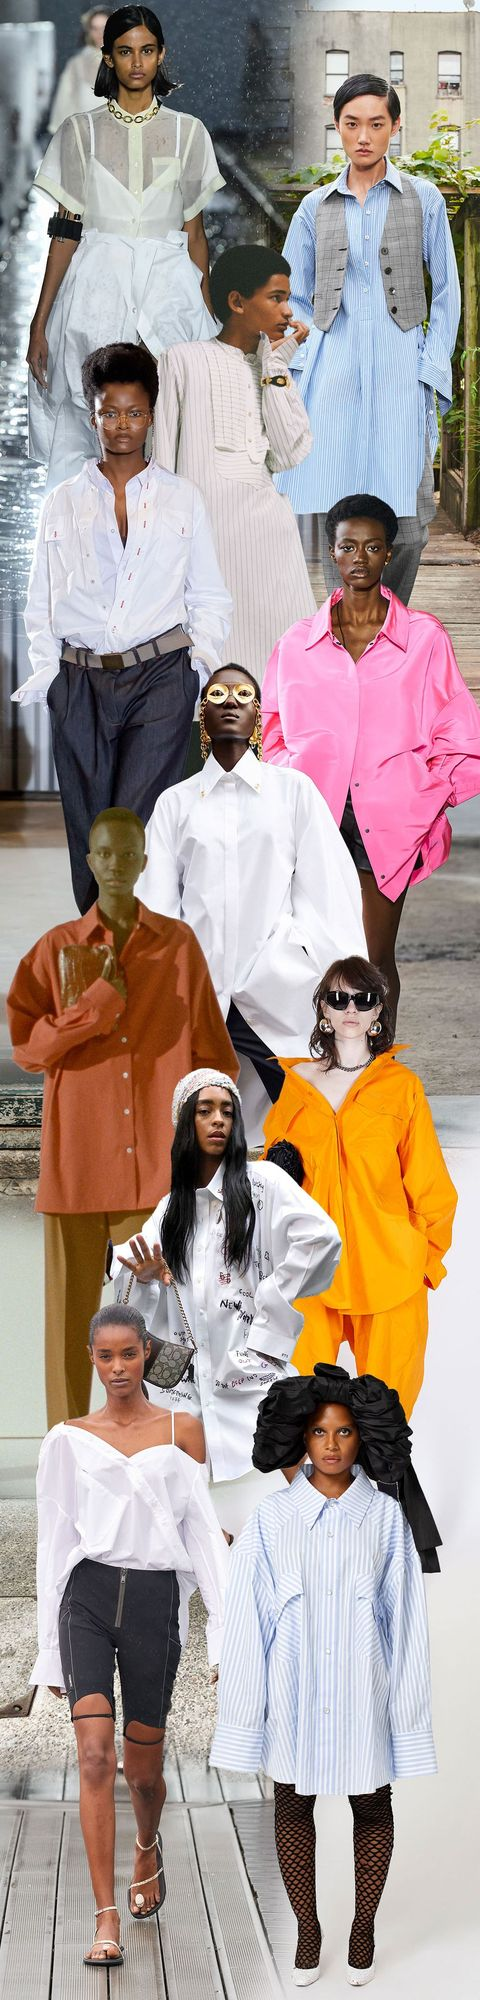 spring 2021 fashion trends